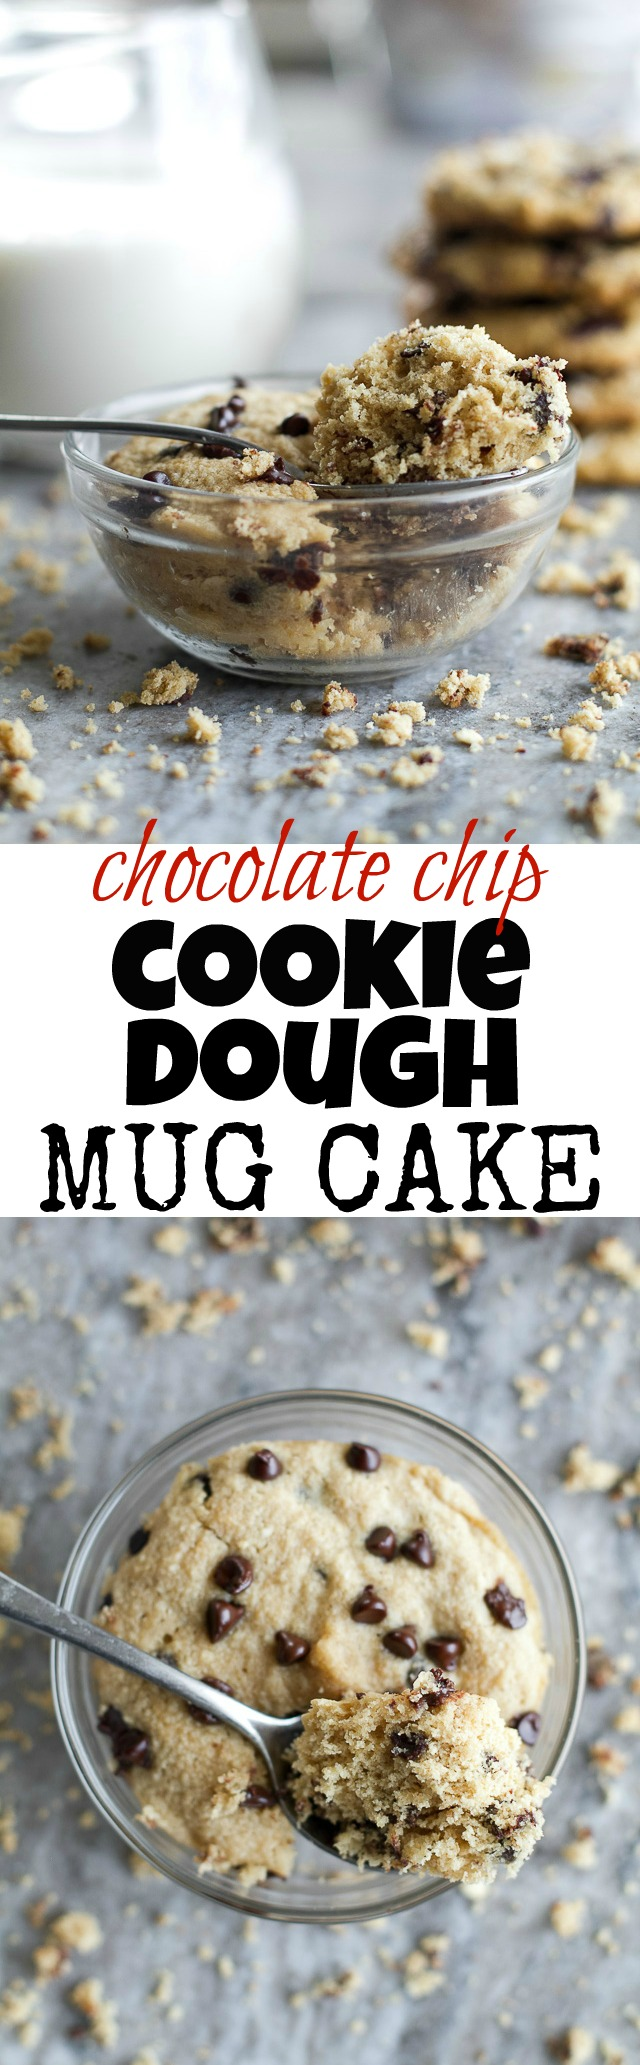 Chocolate Mug Cake No Egg No Flour